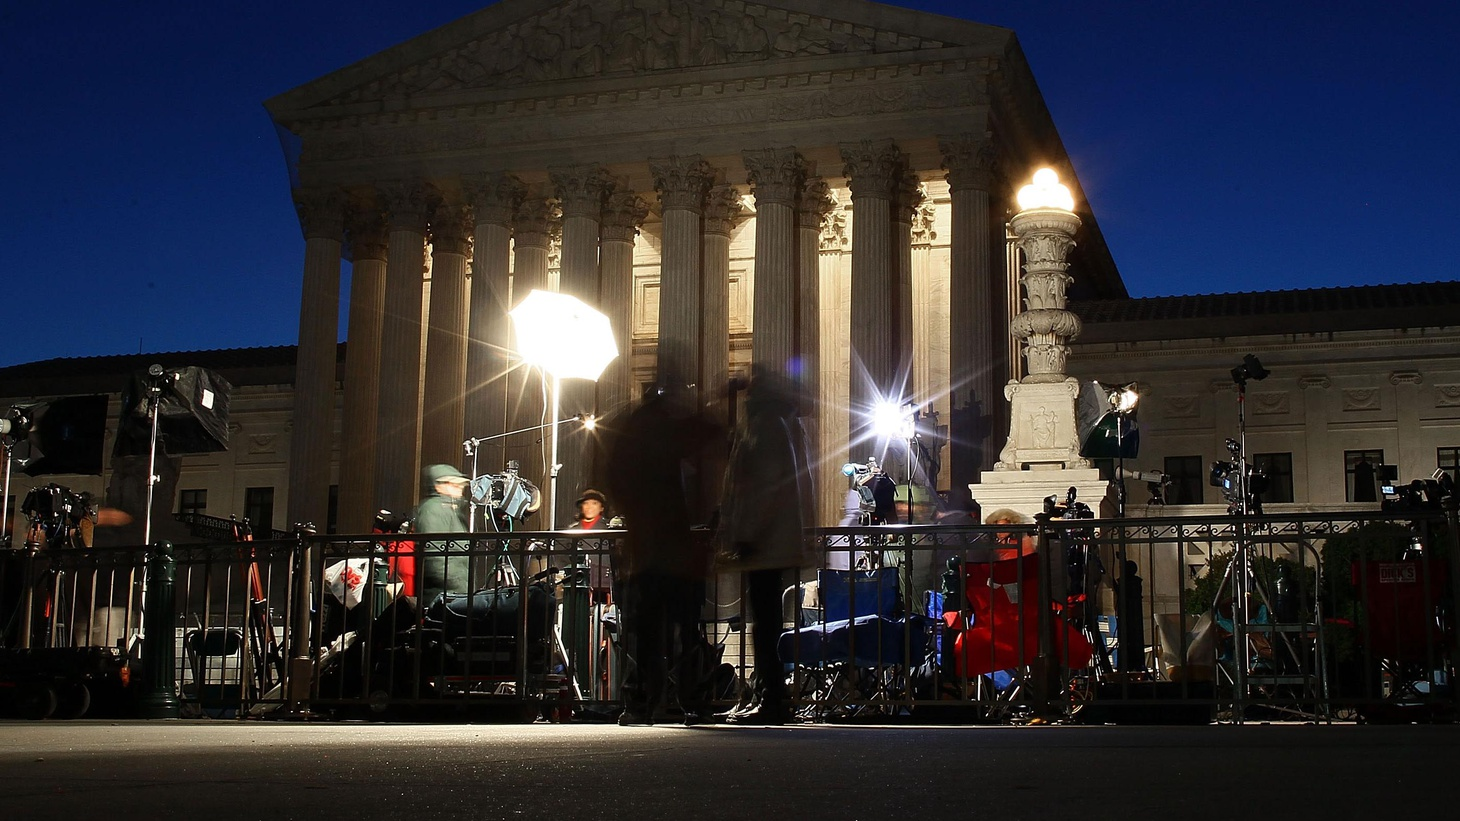 The US Supreme Court heard 3 days of arguments over the Affordable Care Act. Is this the end of the mandate? Our system of social insurance? What of judicial deference?